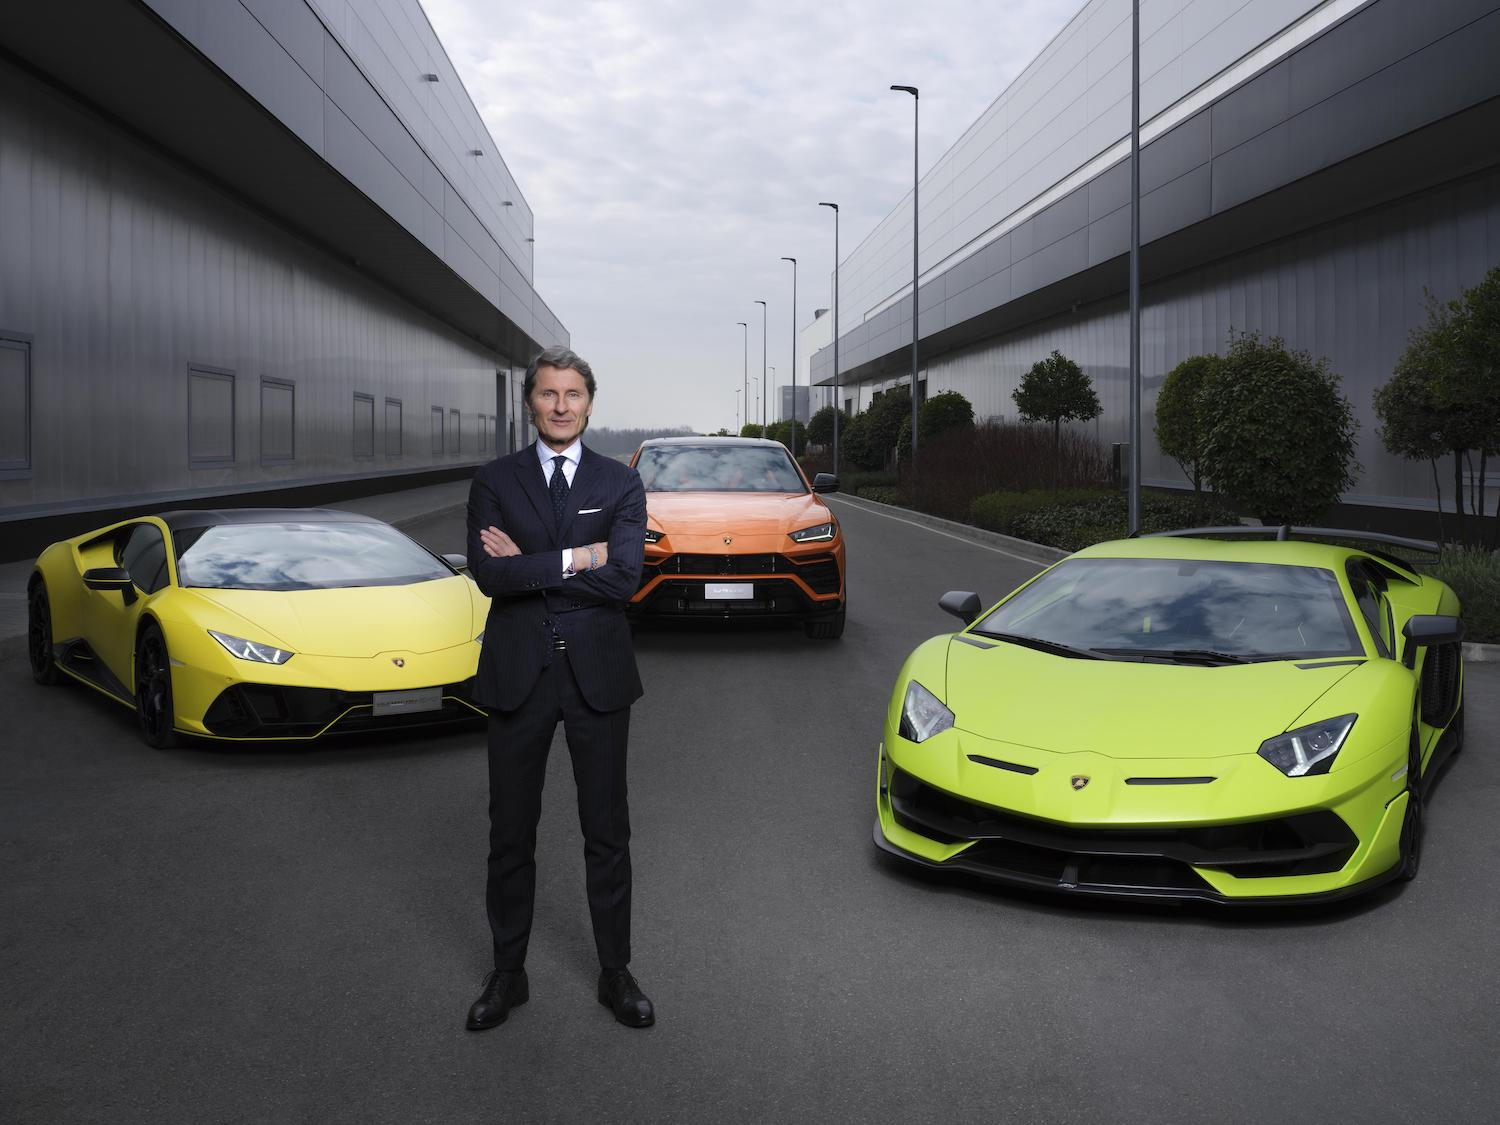 Lamborghini Just Announced Its Plans for a Fully